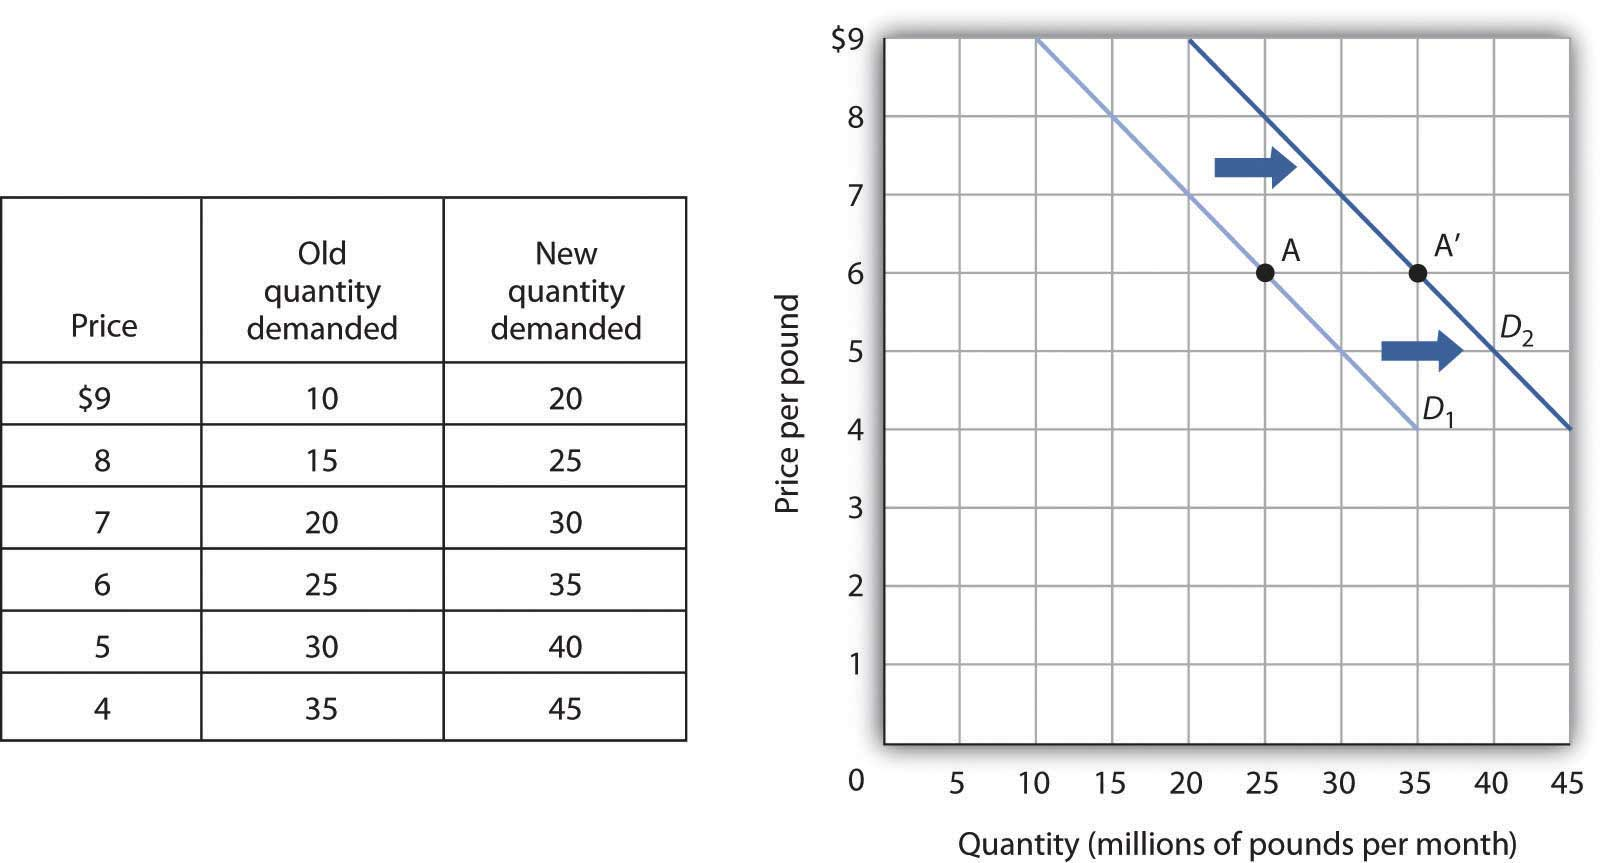 an increase in the quantity demanded means that